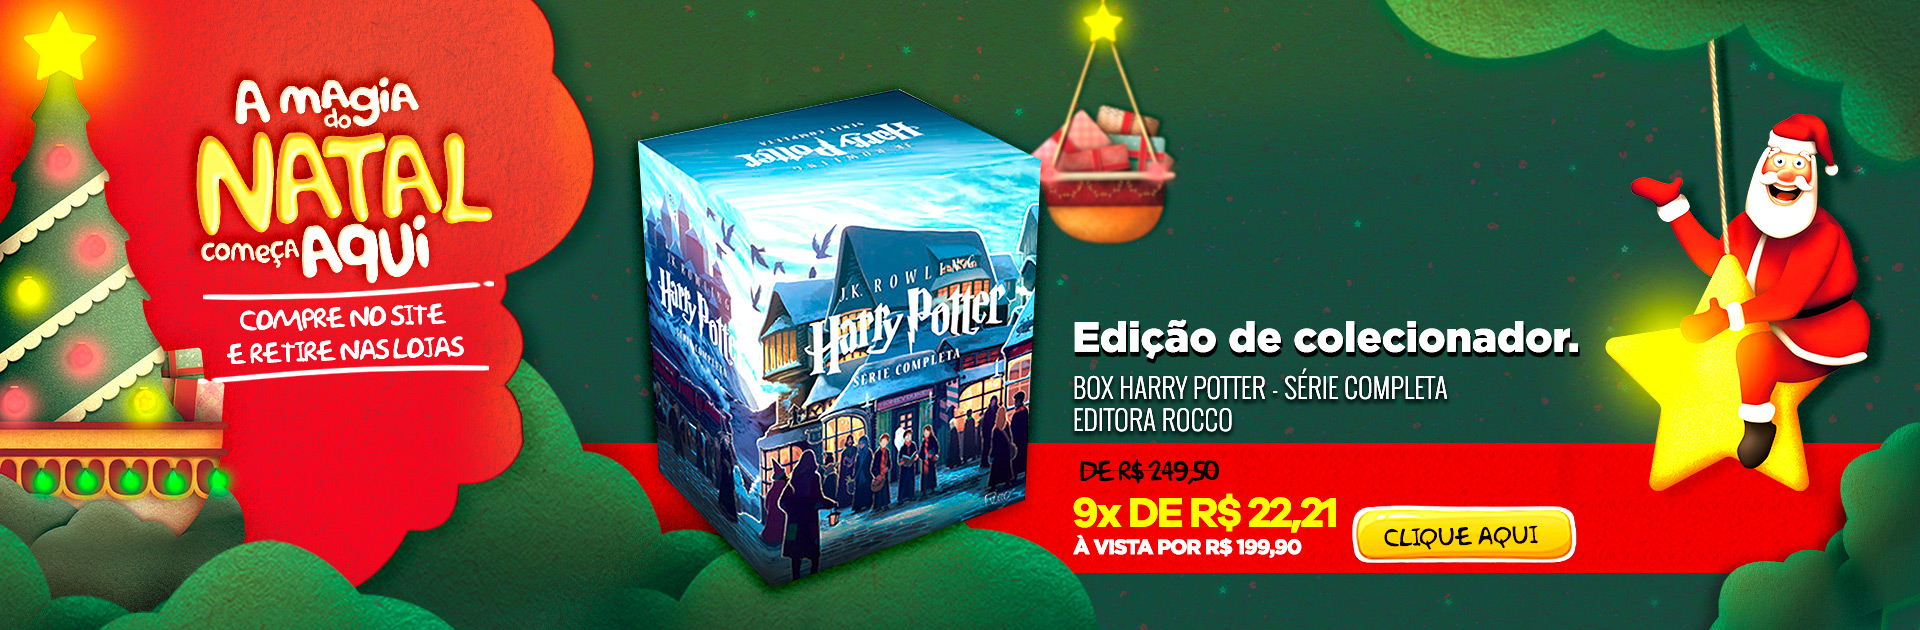 Natal - Box Harry Potter